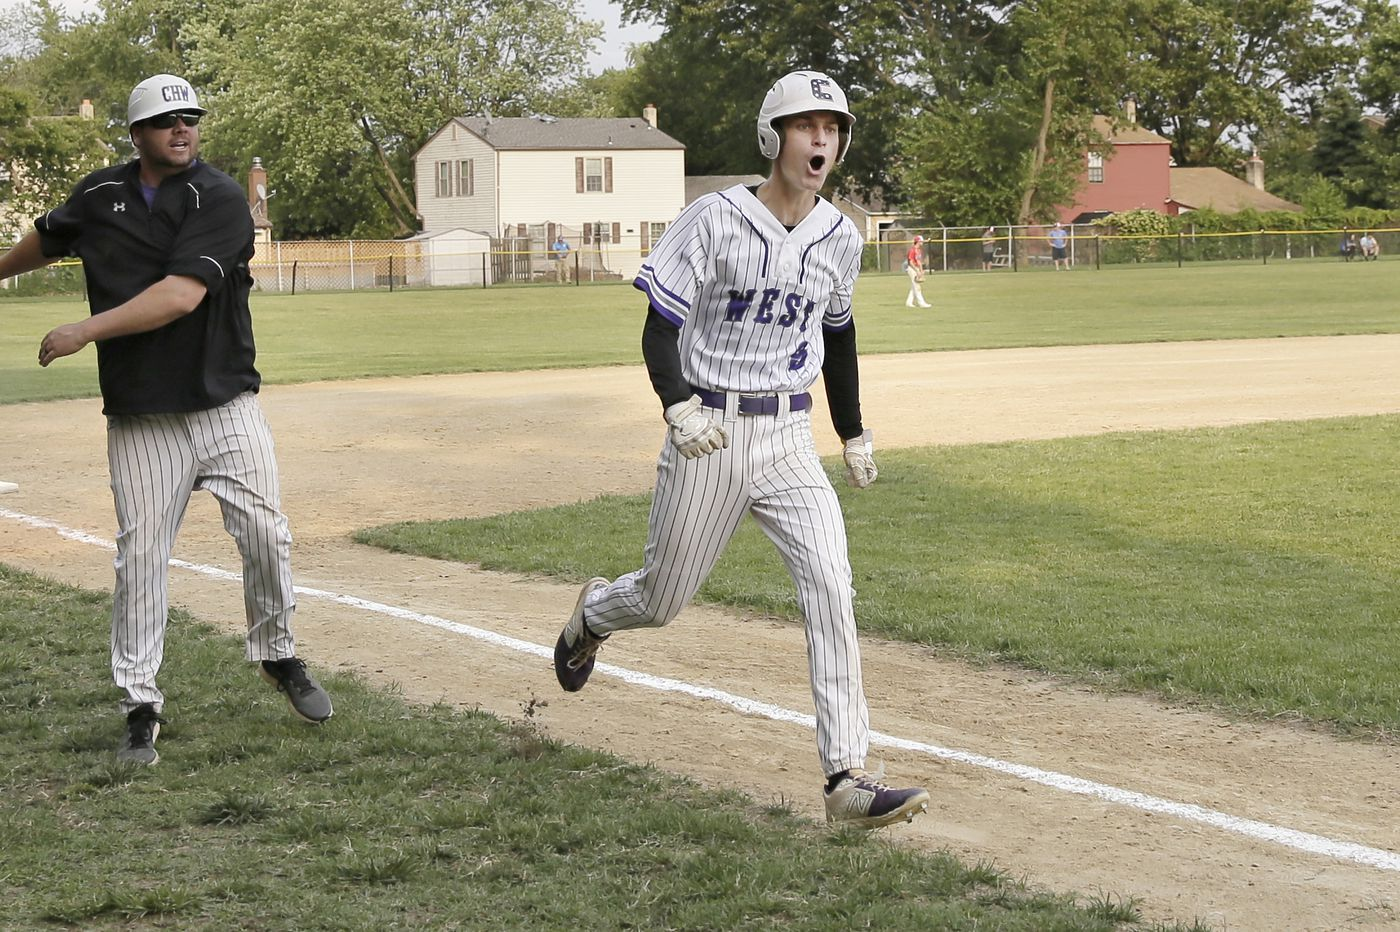 Cherry Hill West wins South Jersey Group 3 championship behind Scott Shaw's clutch catch, home run